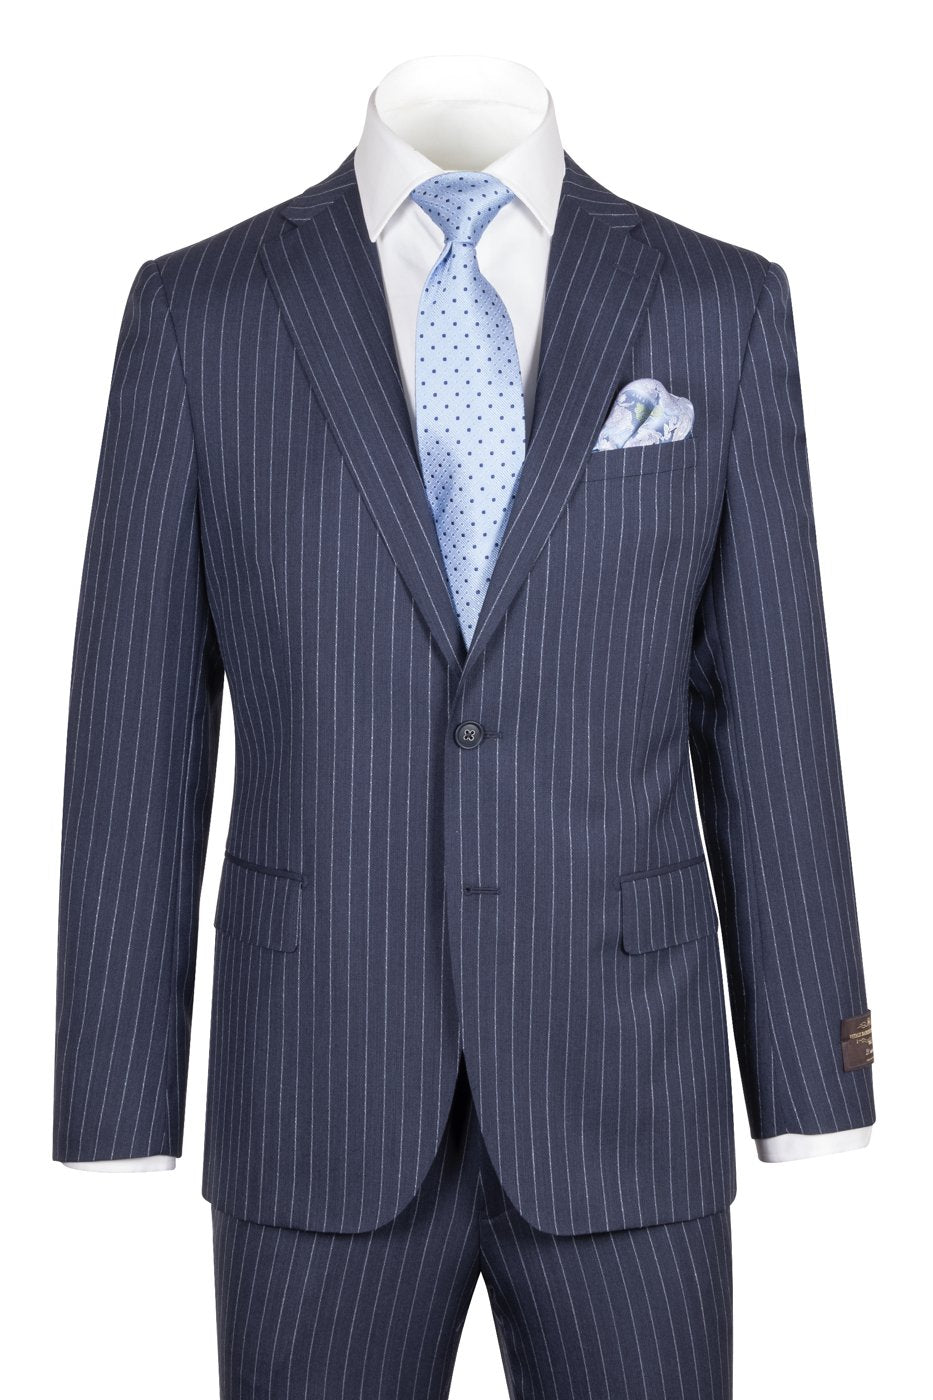 Dolcetto Modern Fit, Navy PIN-DOT Stripe, Pure Wool Suit by VITALE BARBERIS CANONICO Cloth by Canaletto Menswear CN95.939/3